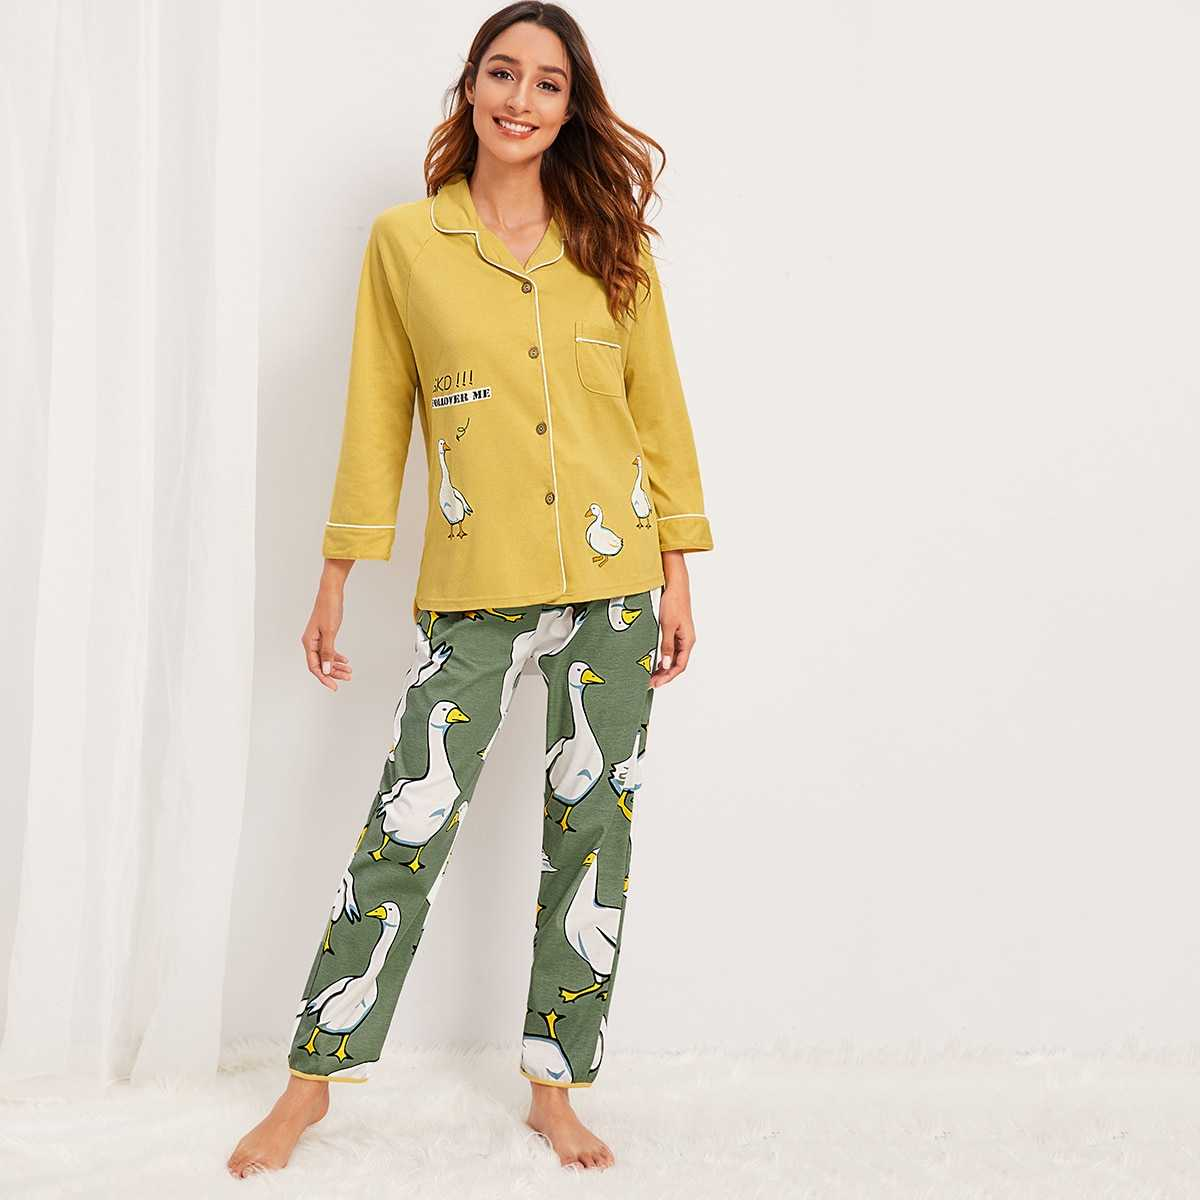 Duck Print Button-up Pajama Set in Multicolor by ROMWE on GOOFASH